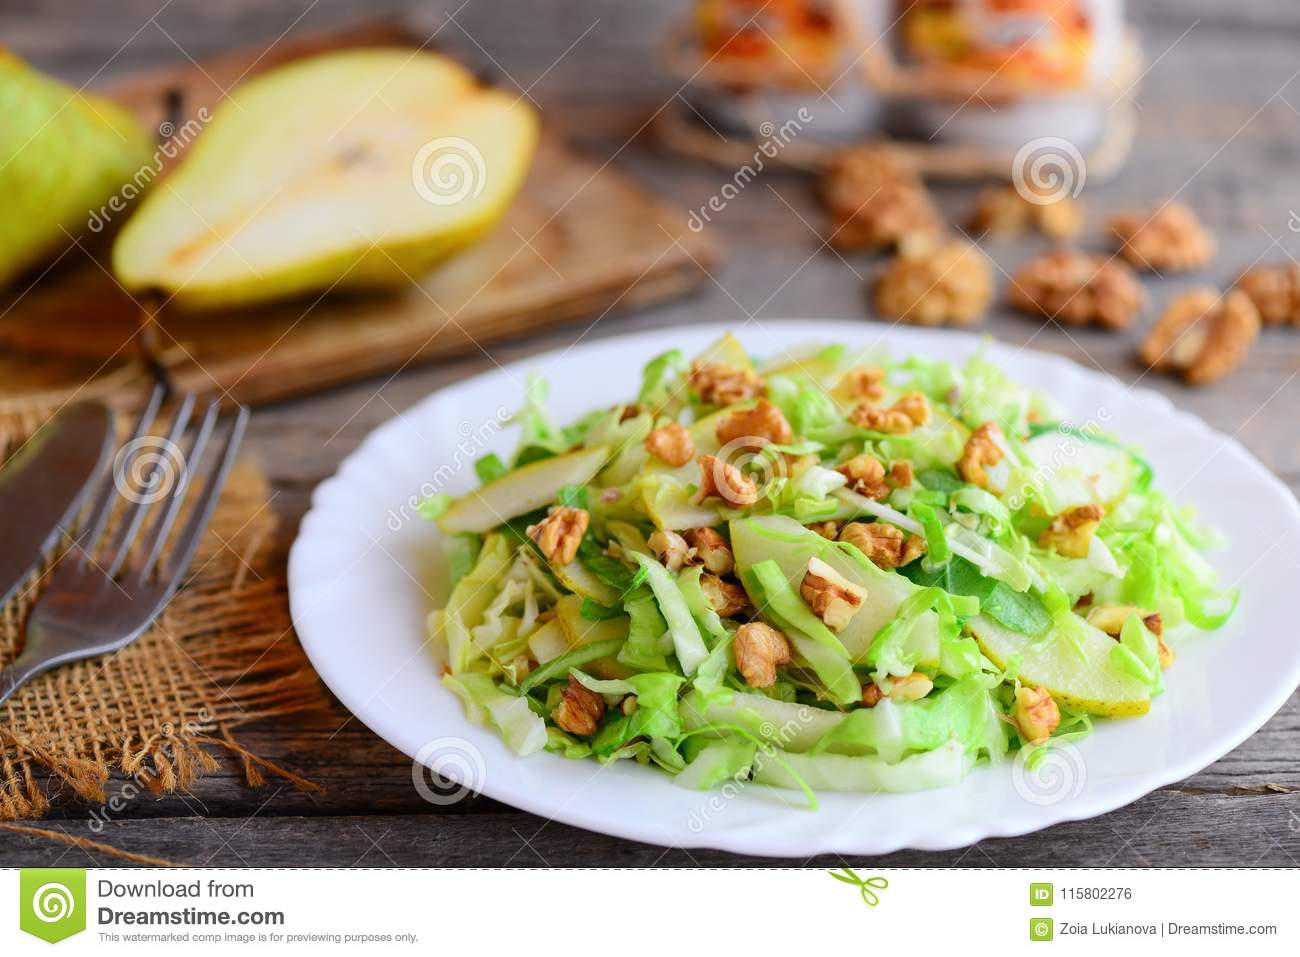 Cabbage And Pear Salad Easy Salad With Fresh Pear Cabbage And Walnuts On A White Plate And On Rustic Wooden Background Stock Photo Image Of Homemade Pear 115802276